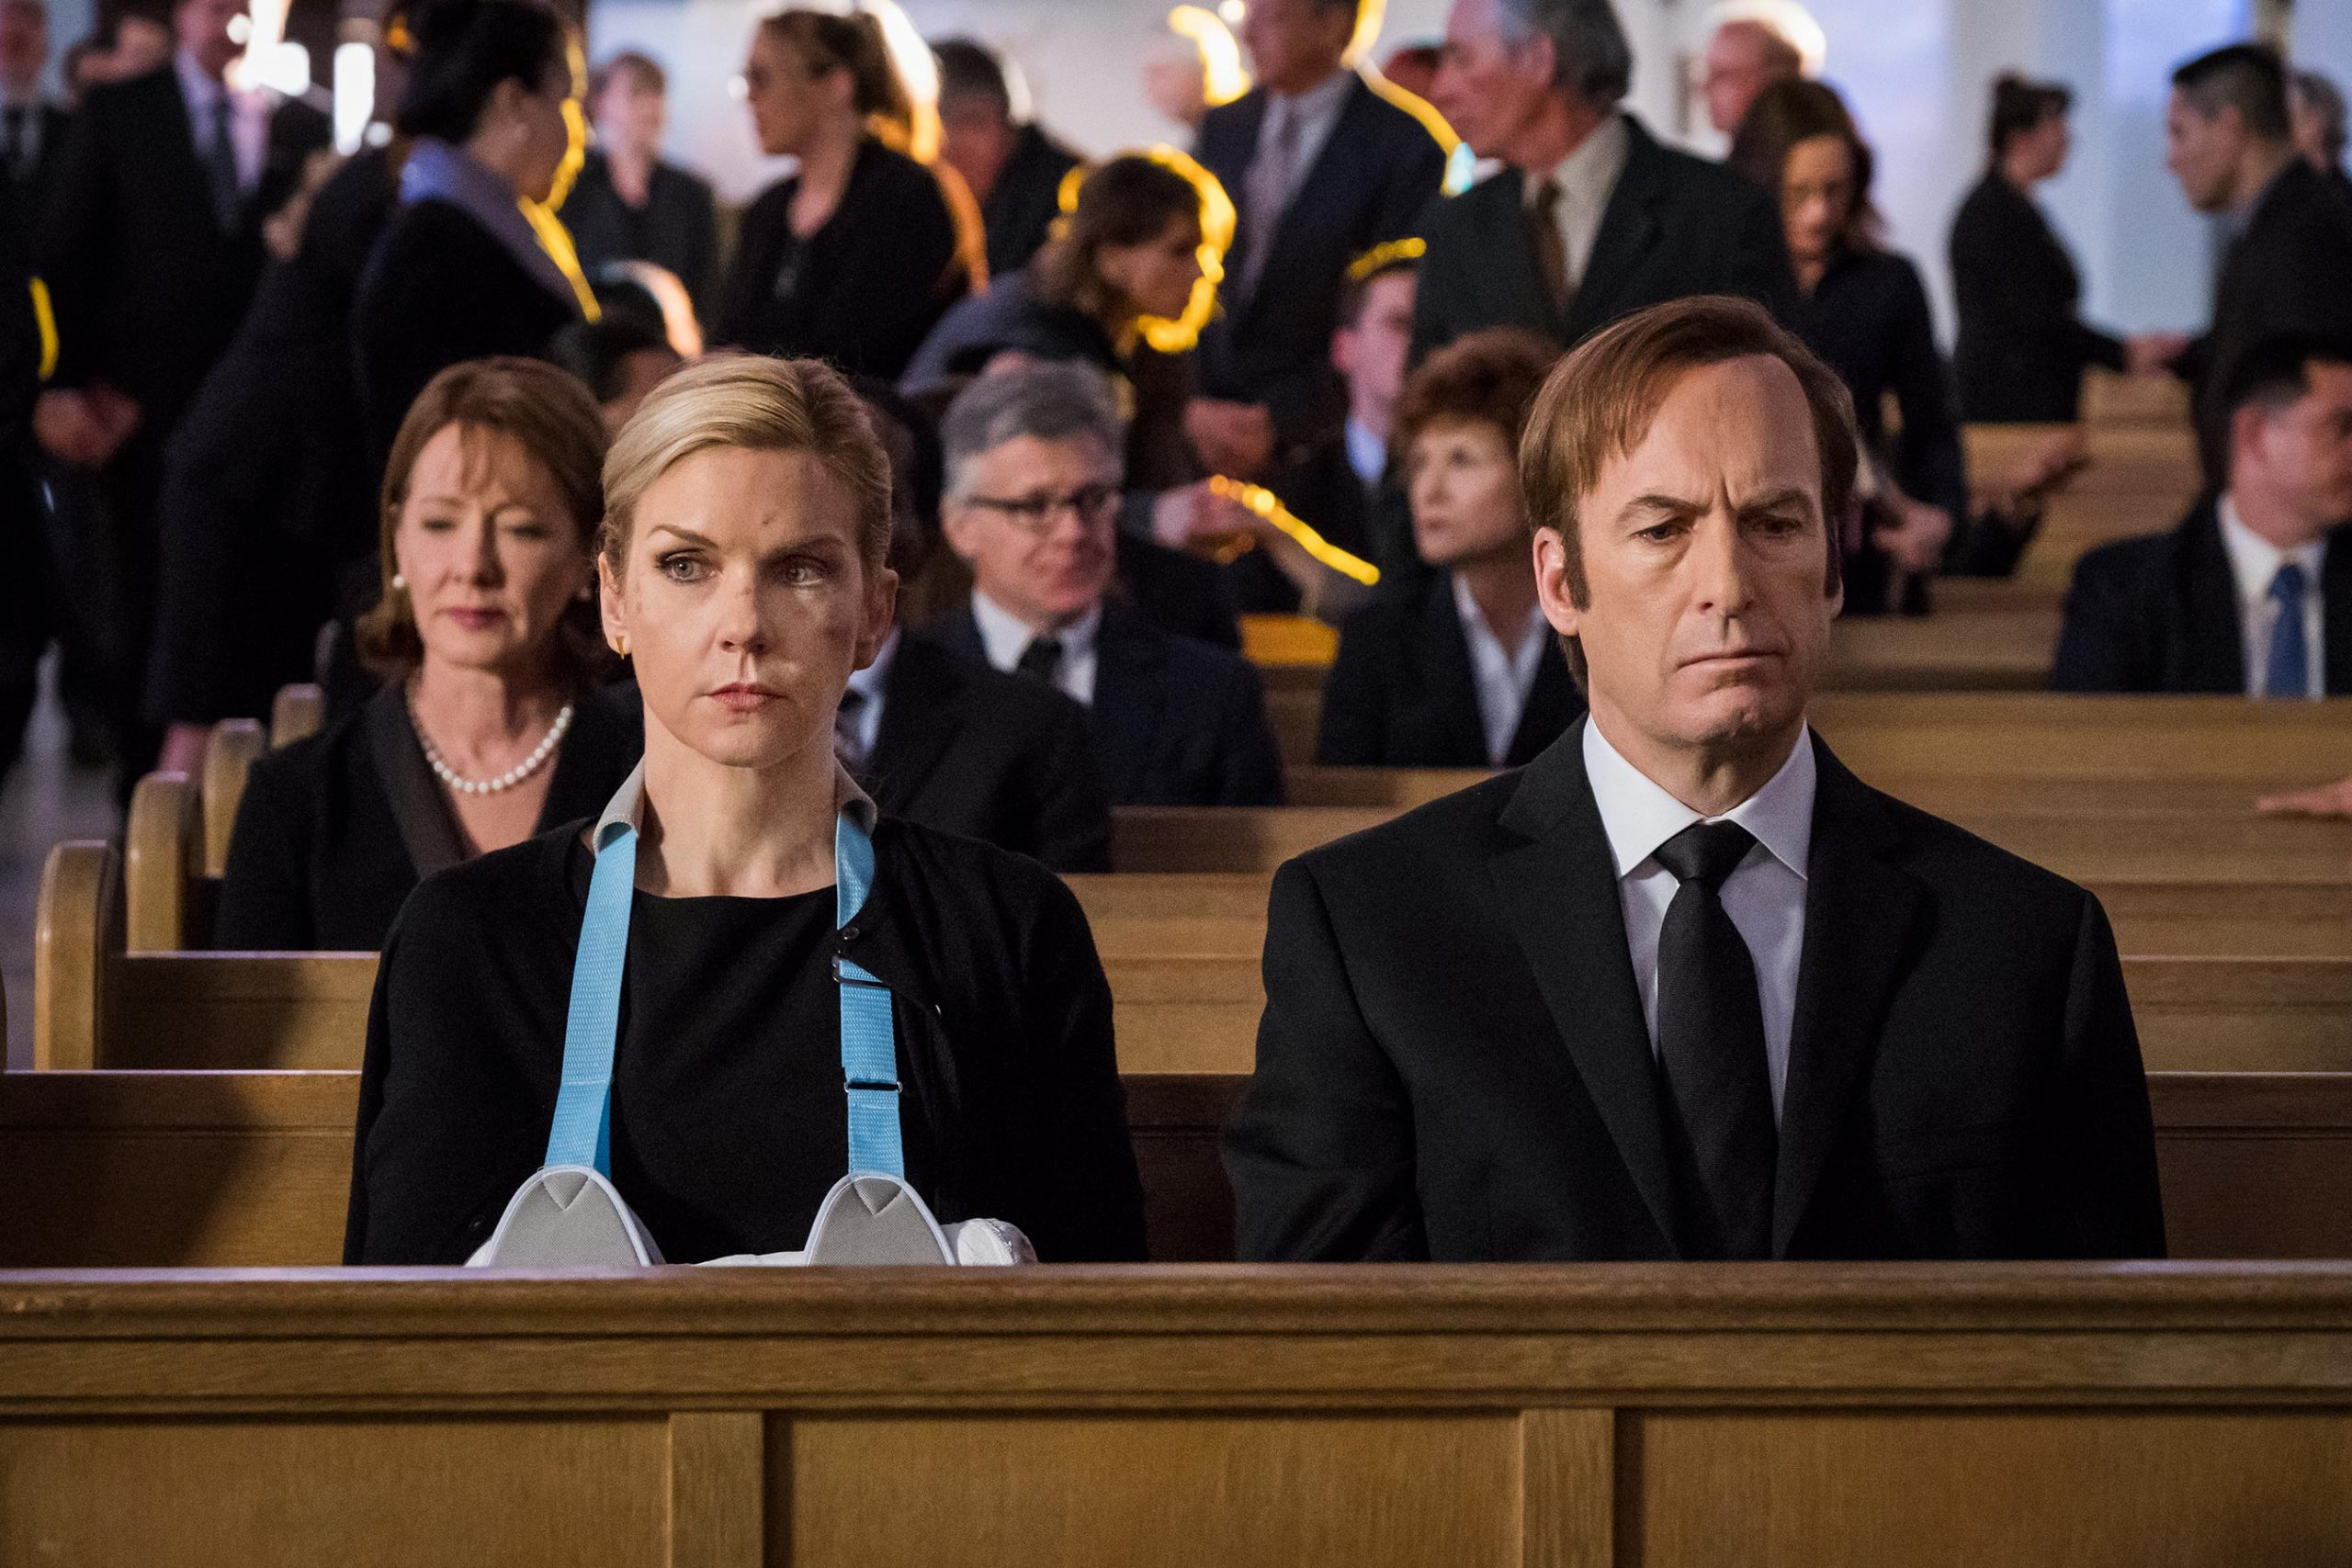 'Better Call Saul' star Bob Odenkirk hopes main character redeems himself